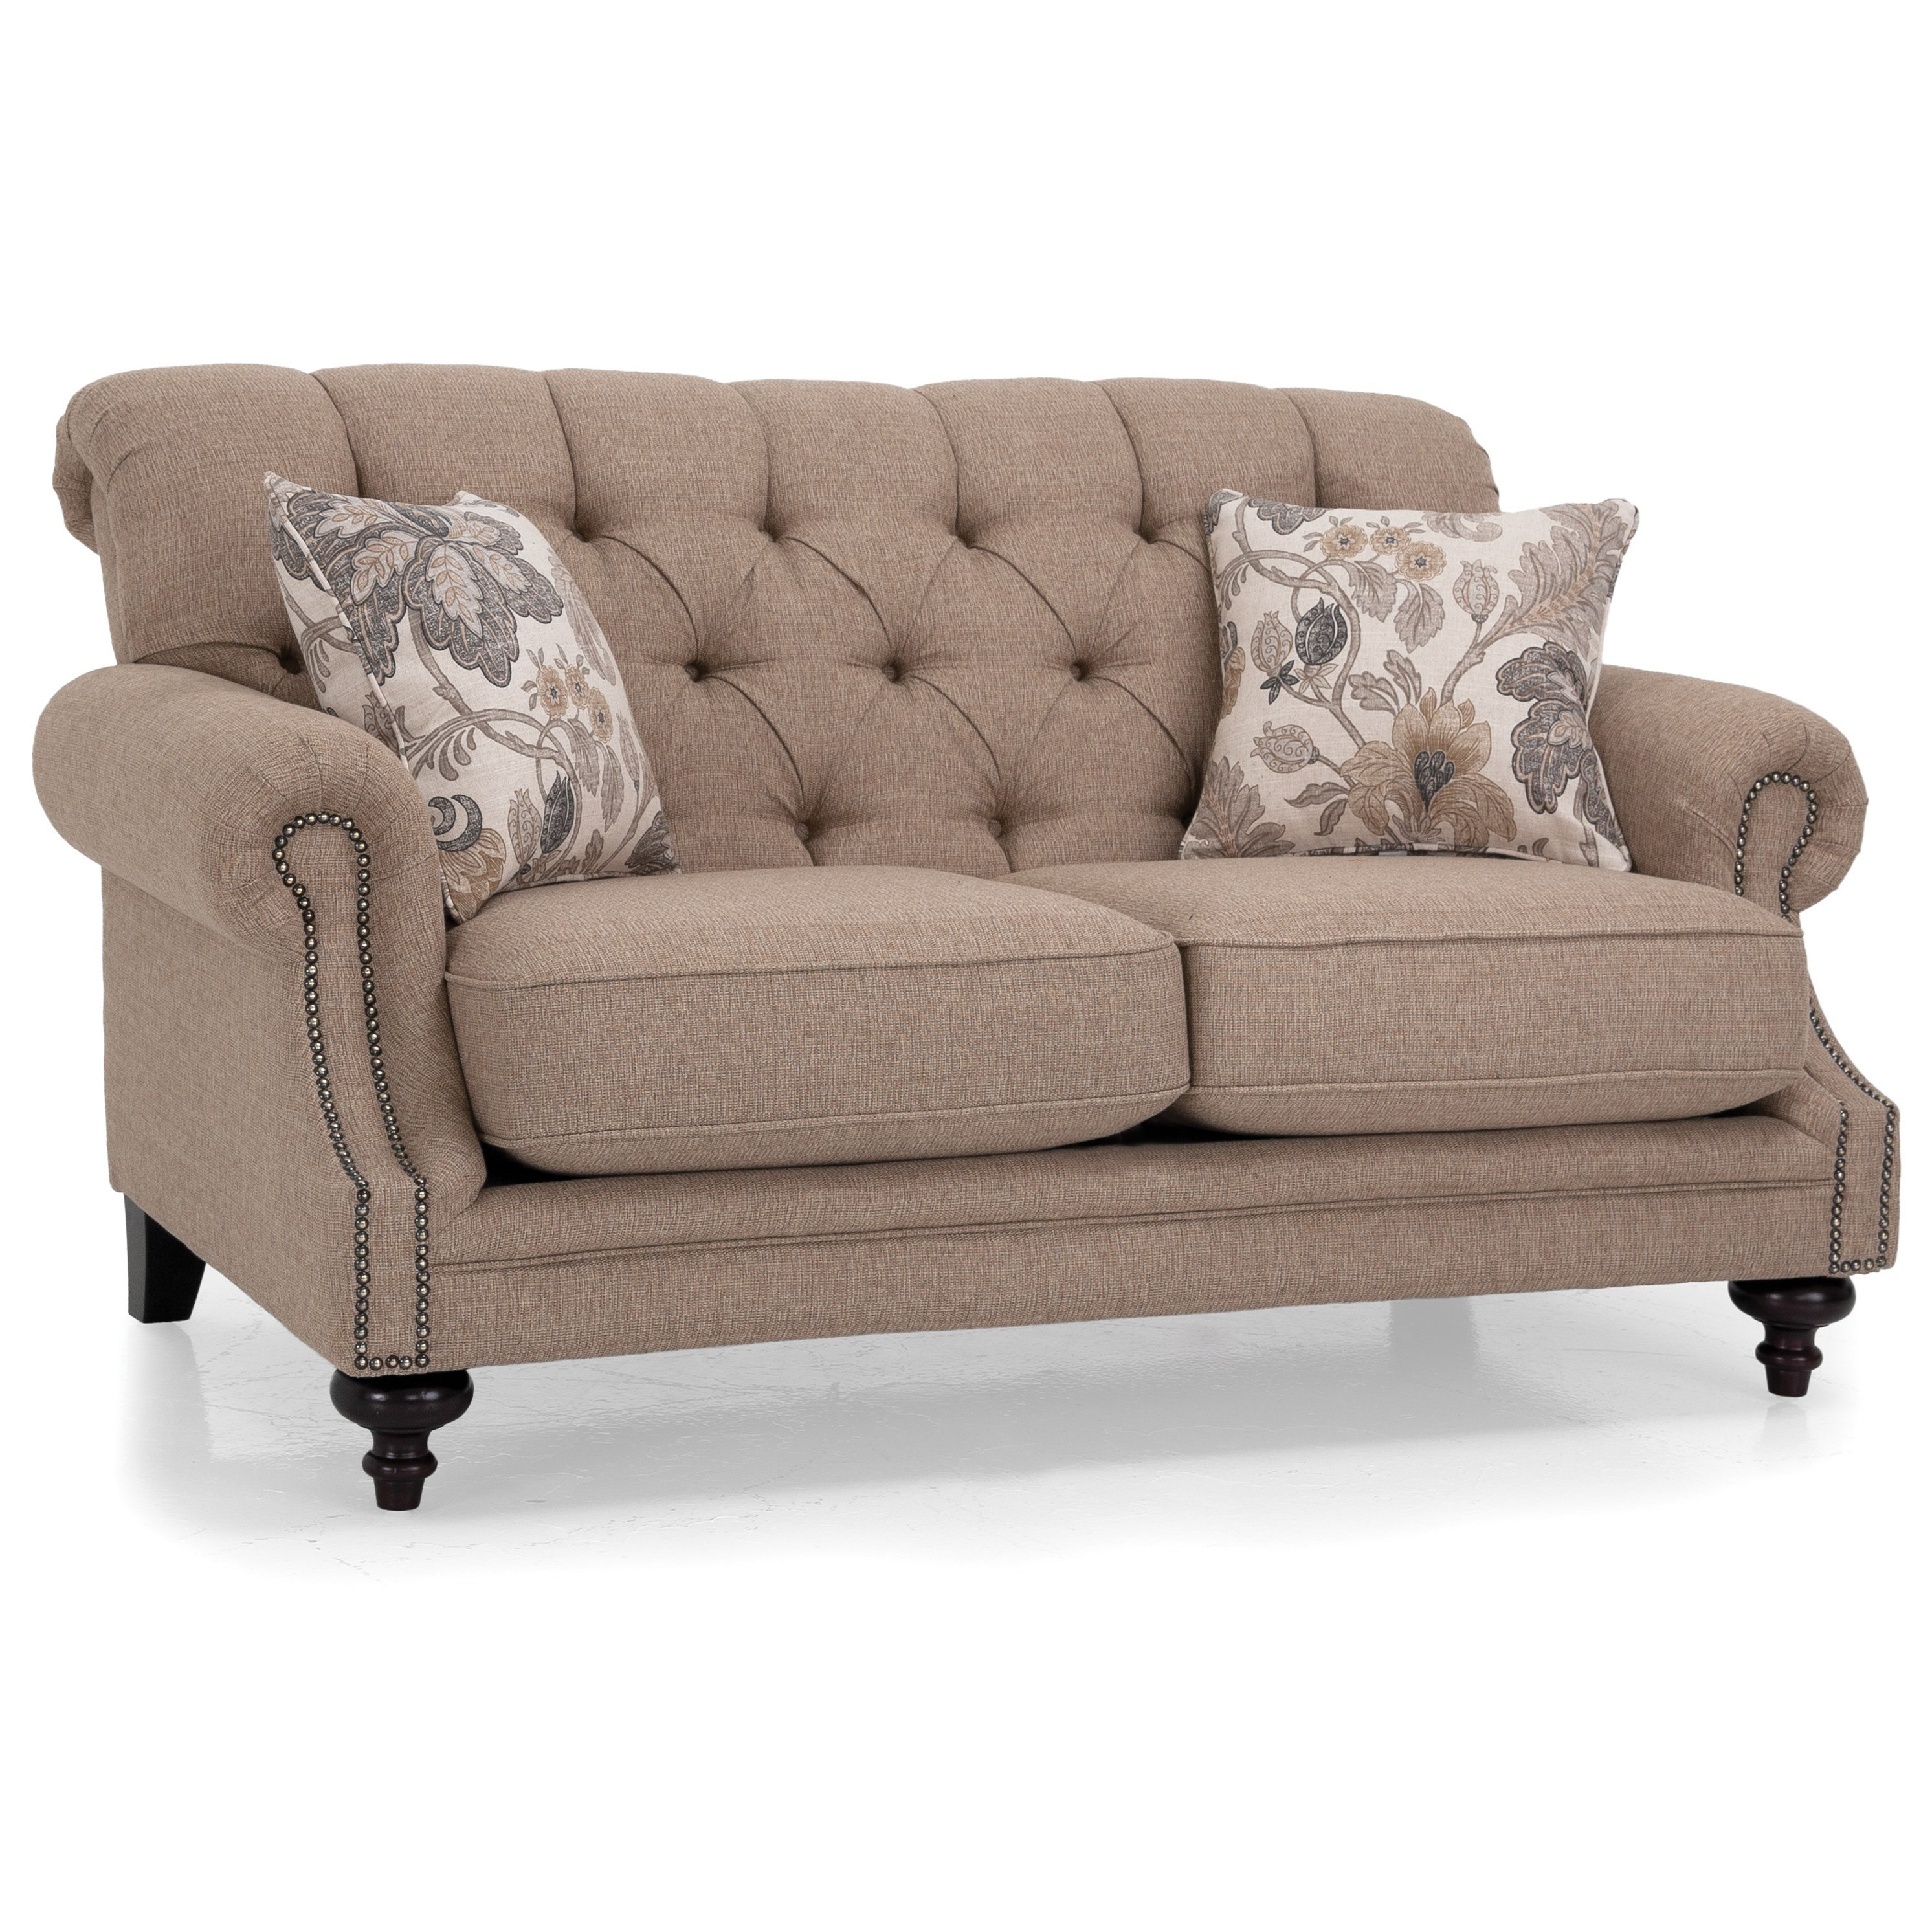 2133 Loveseat by Decor-Rest at Stoney Creek Furniture